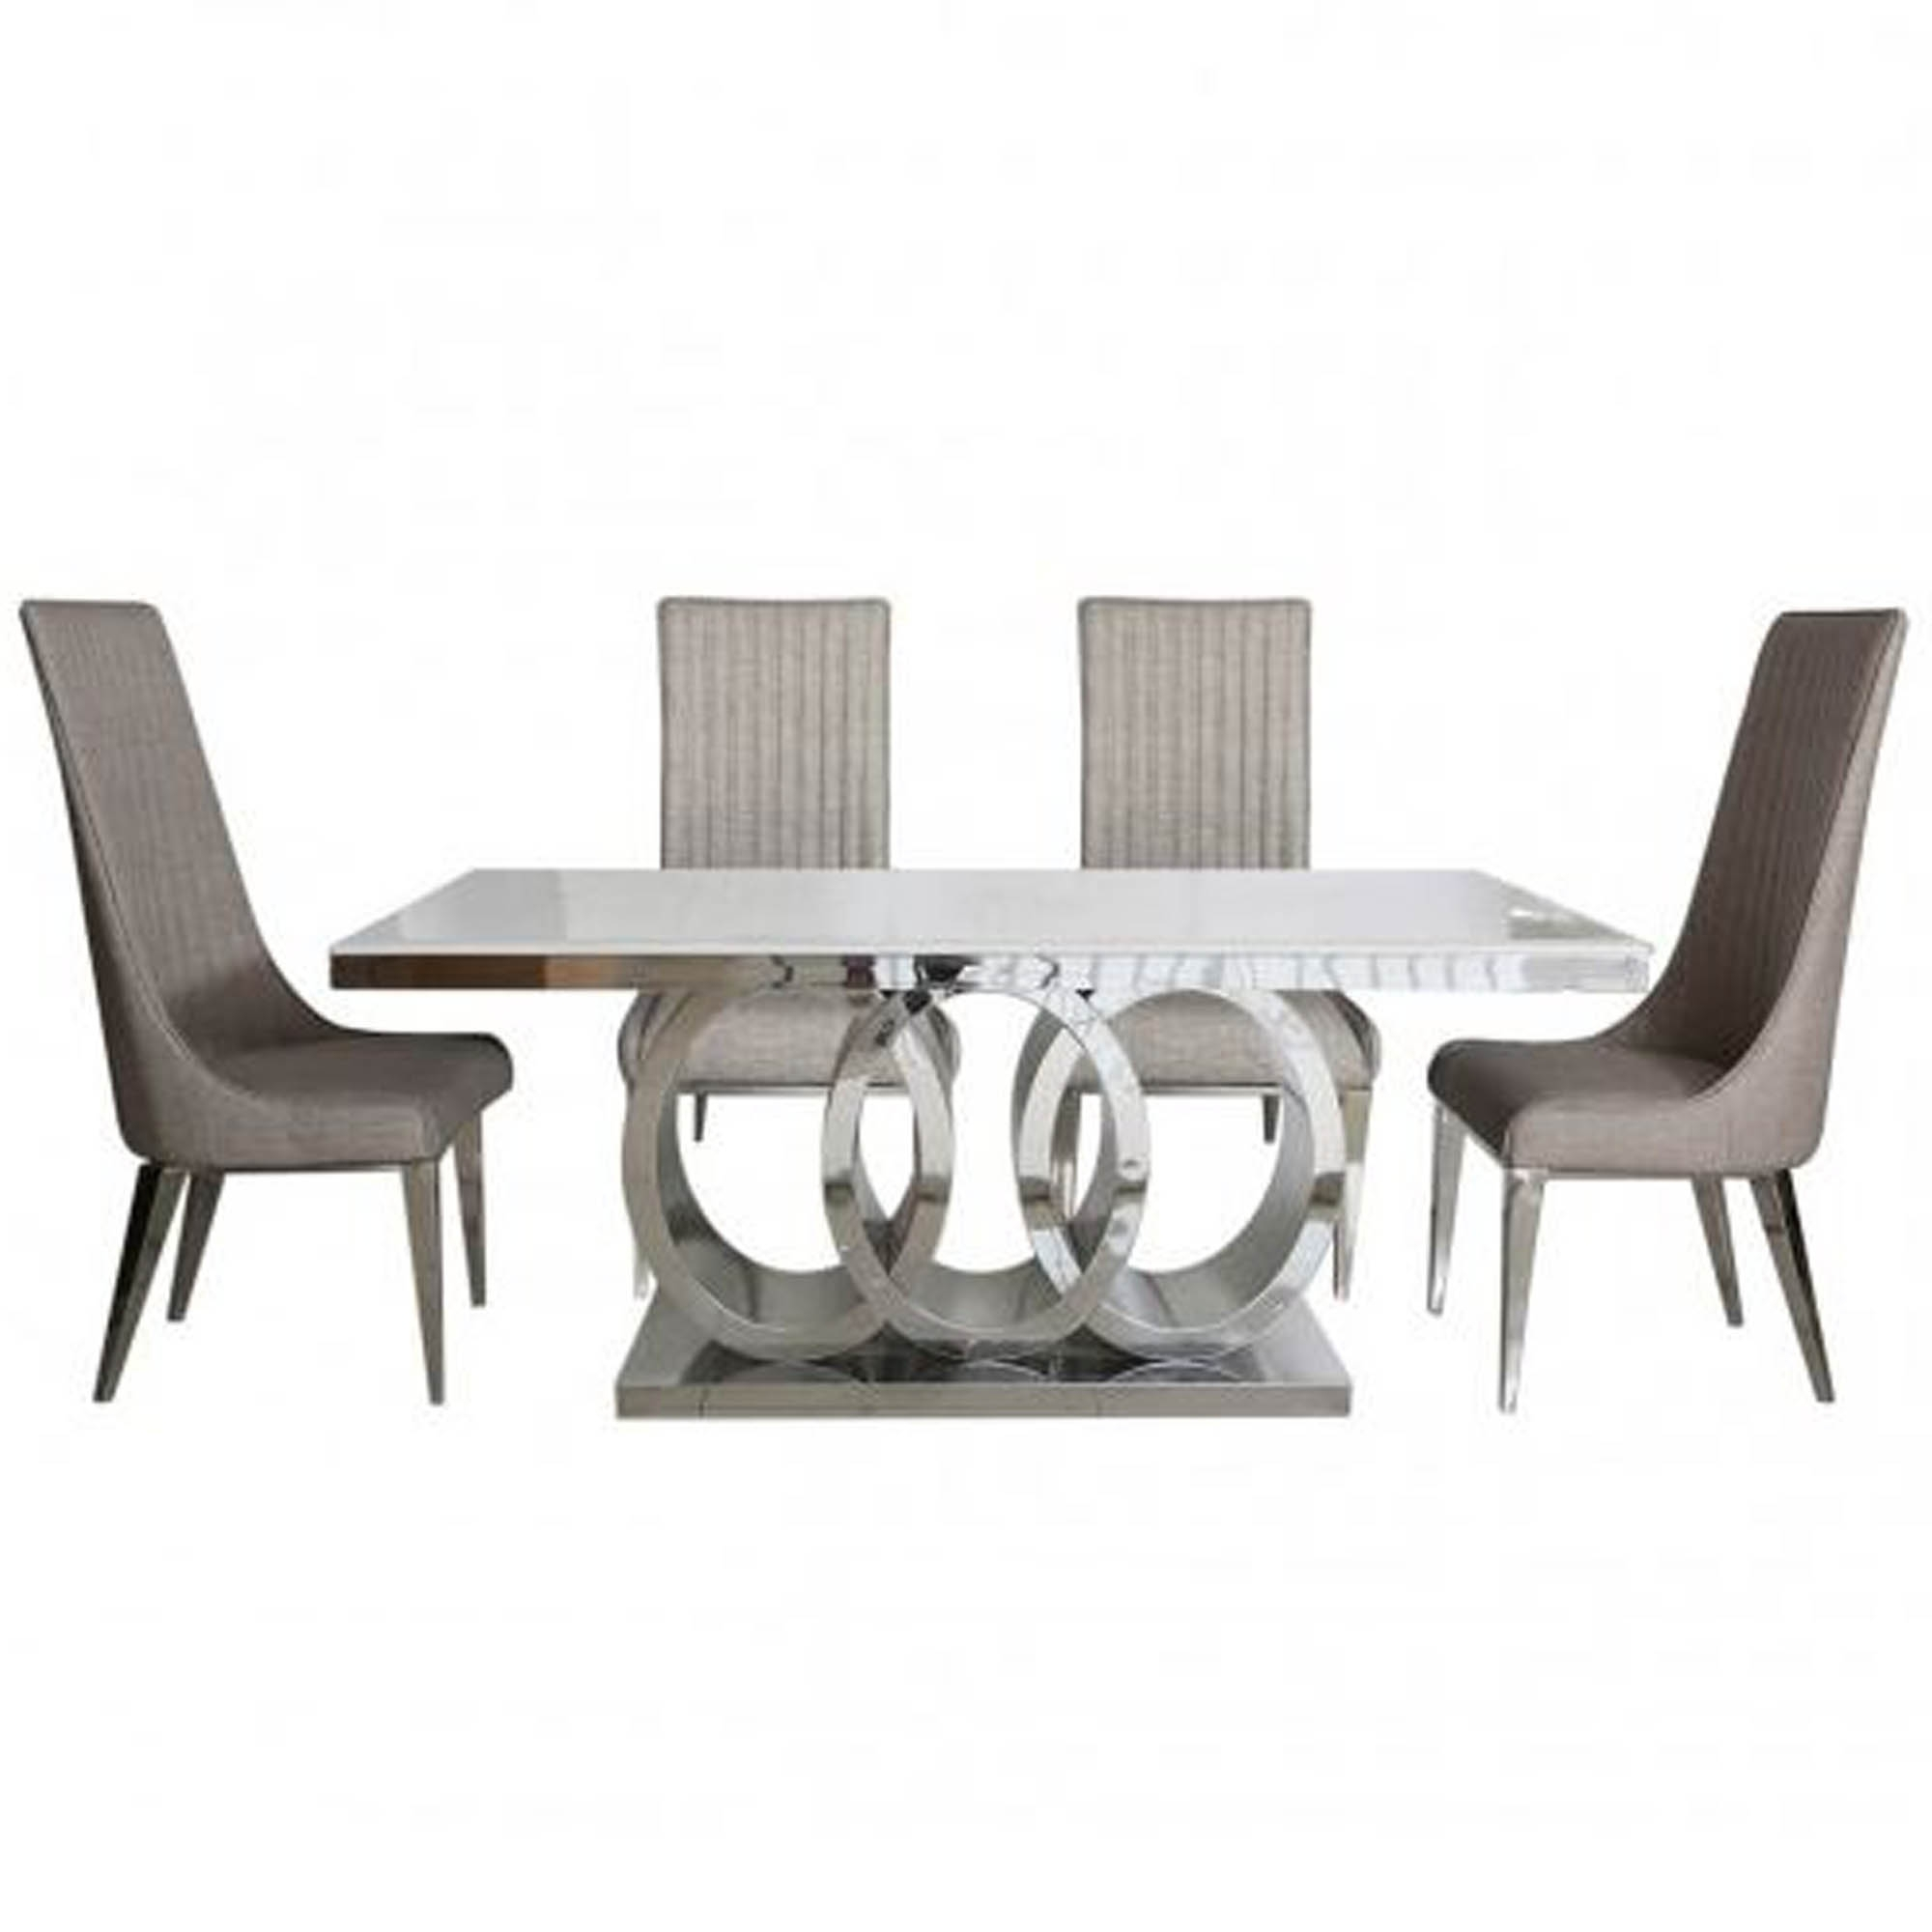 Odelia Natural Marble Effect Dining Table Set Dining Room Furniture